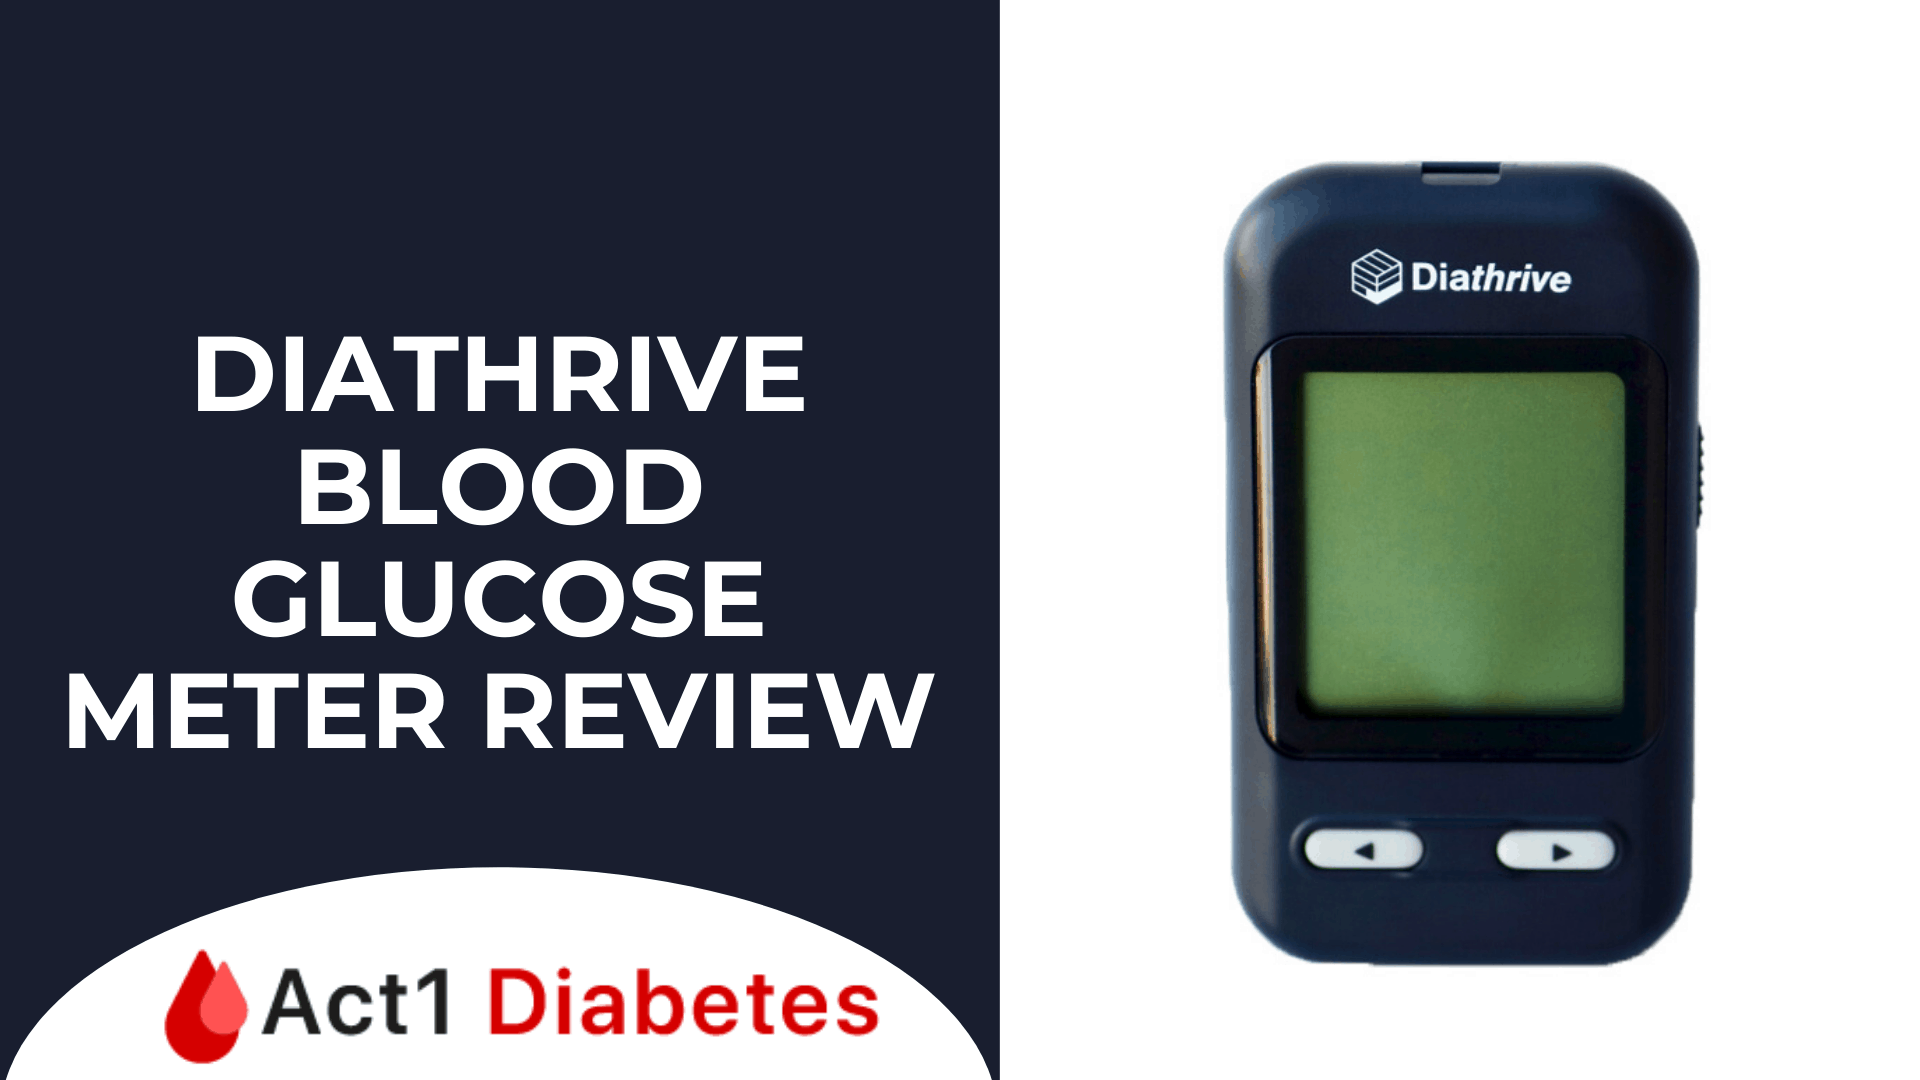 DiaThrive Blood Glucose Meter Review